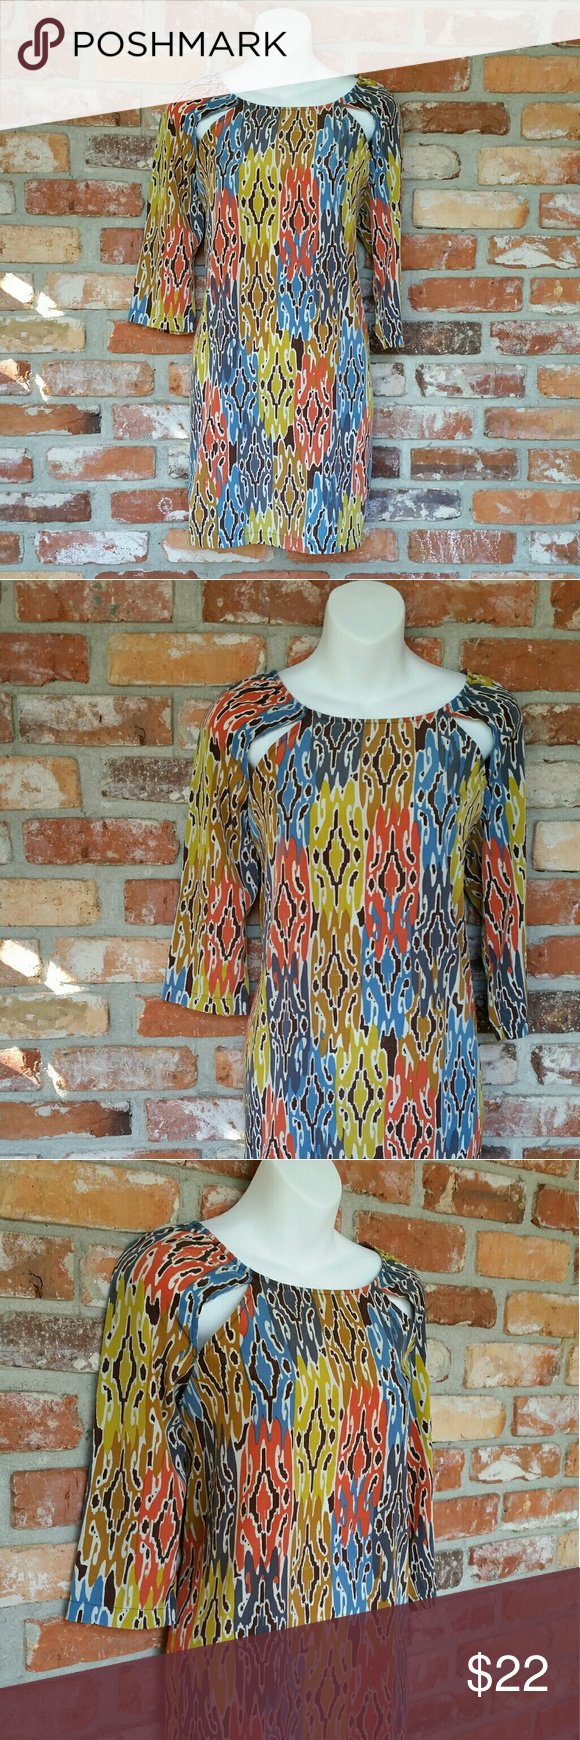 {Glam Abstract Shift Dress} Style comes easy in this little shift dress. Beautiful warm colors and shoulder cut outs complete the look. Like new condition. Made in the USA.   Measurements  Bust: 39 inches  Length: 33 inches   Bundles and reasonable offers welcome. Glam Dresses